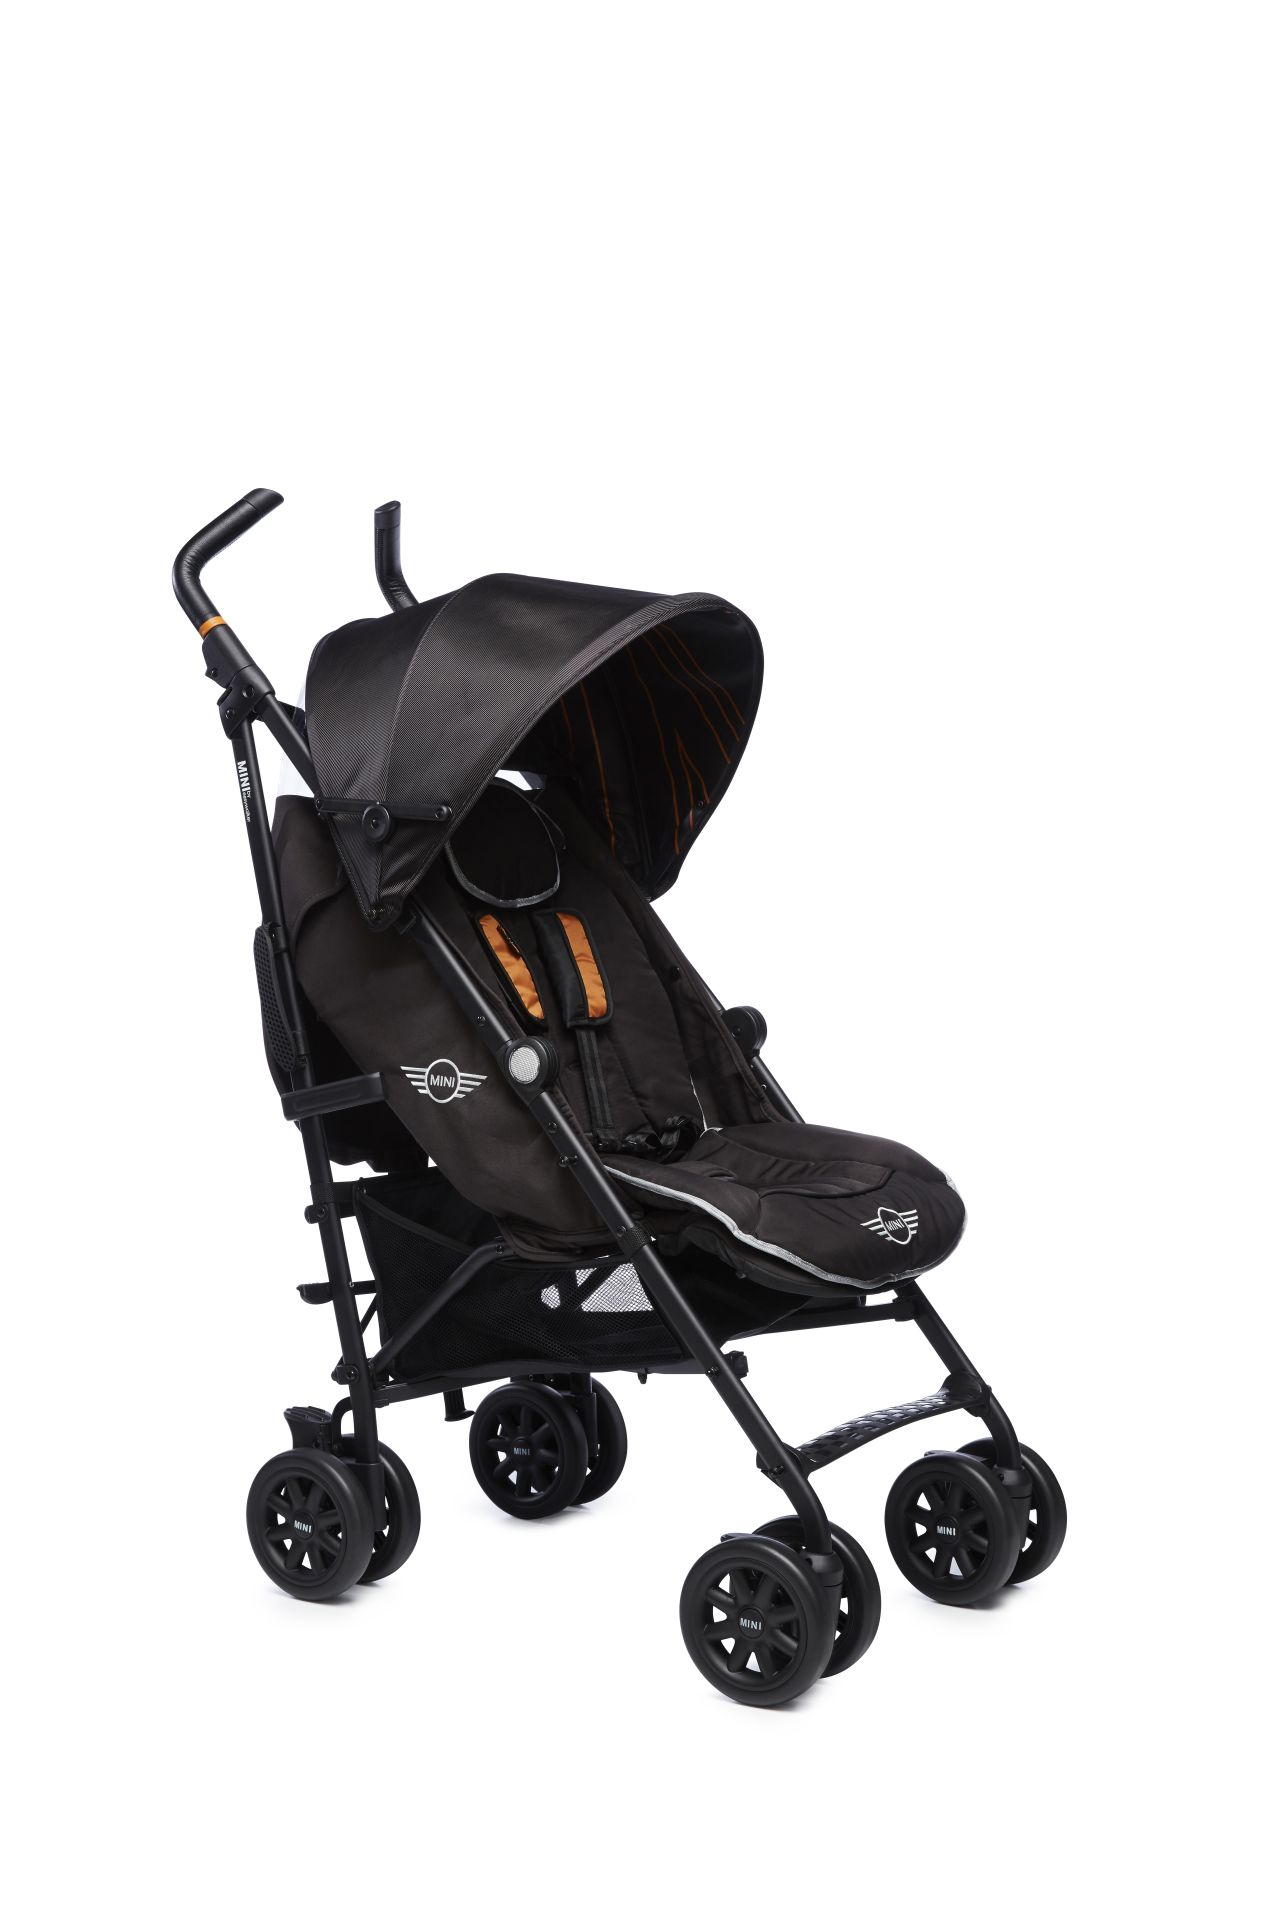 Mini By Easywalker Buggy Special Edition 2017 Jet Set